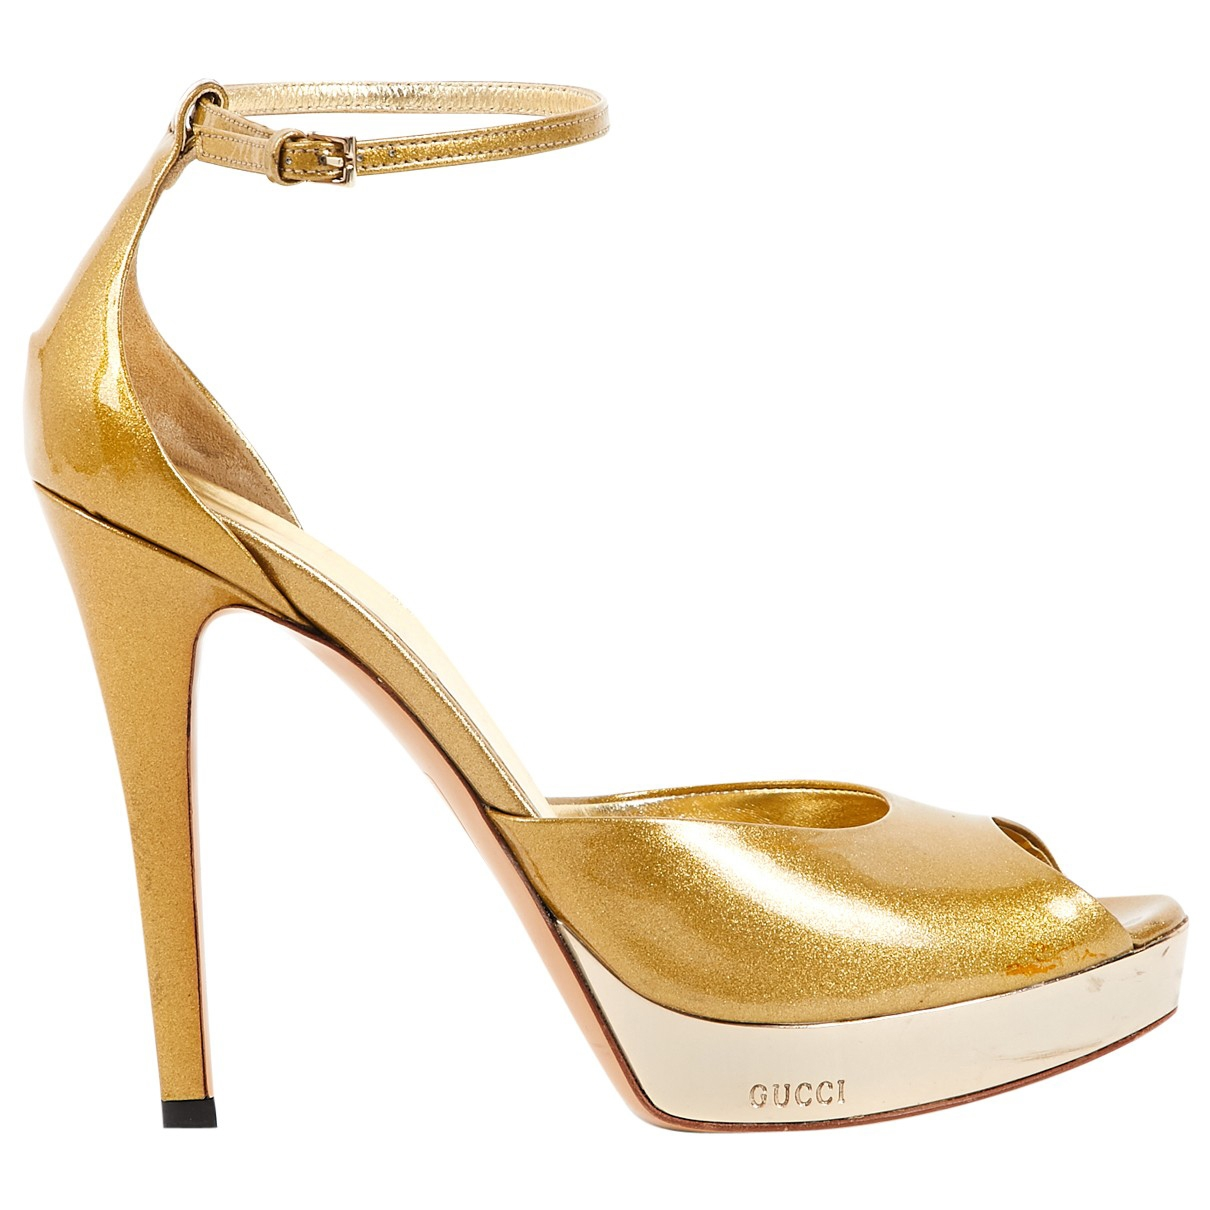 Gucci \N Gold Patent leather Heels for Women 38 EU